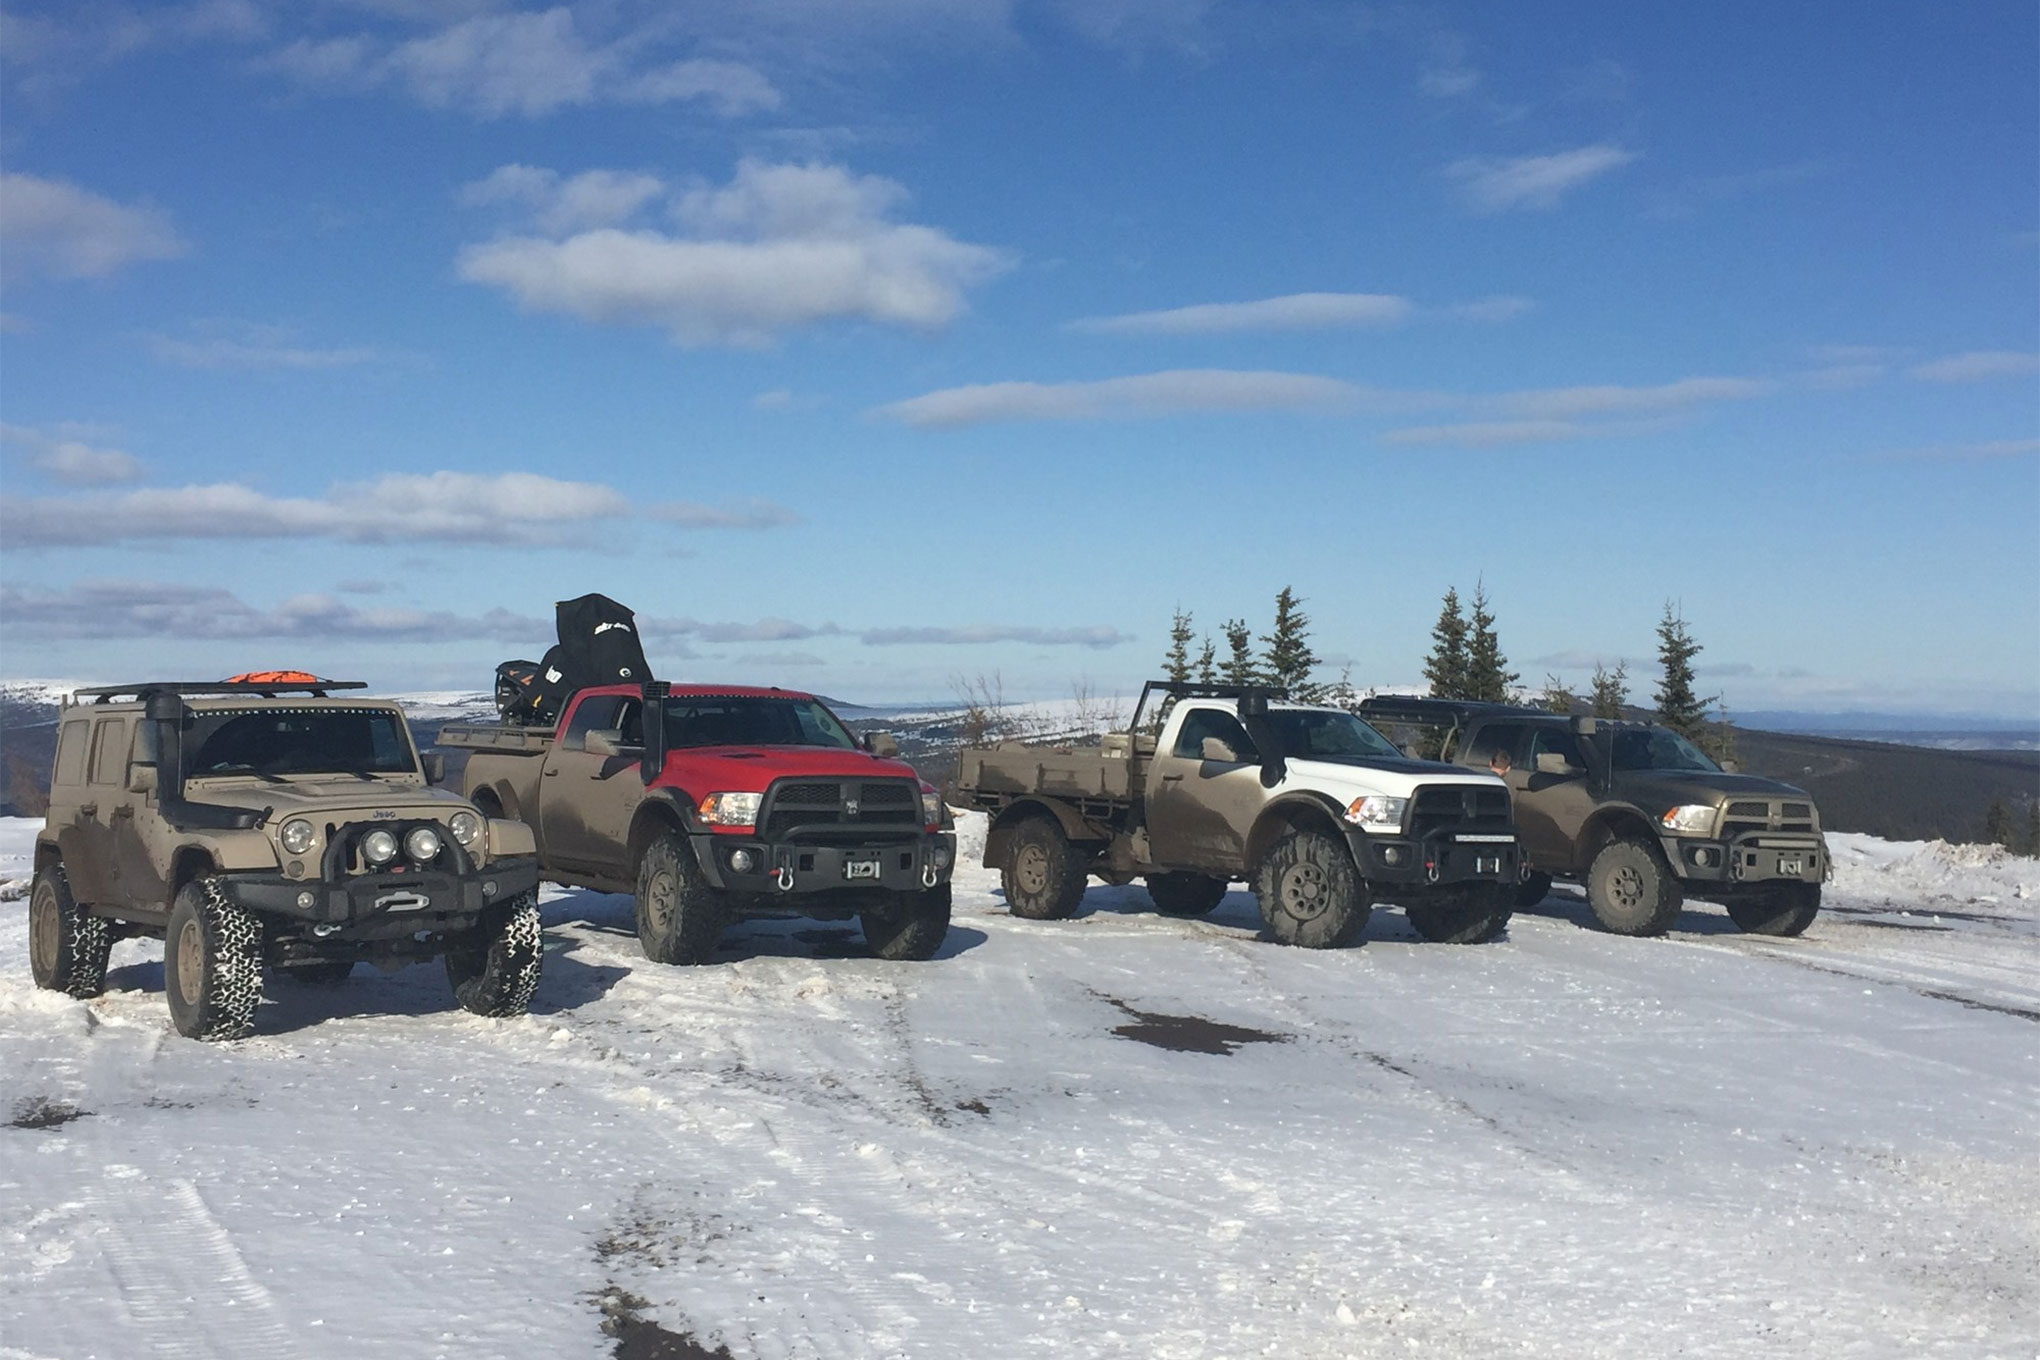 The group of vehicles included three Cummins diesel Ram trucks. Two of them were outfitted with AEV's Prospector package, and one of those was a tray-bed regular cab truck. The third was a Hemi V-8 powered Jeep Wrangler Unlimited. The group of eight guys and four 4x4s convened in Whitehorse, Canada, as the jumping-off point for the trip to Tuktoyaktuk (Tuk). This meant that the AEV team had already driven 1,800 miles from Missoula, Montana, where the company is headquartered. Suffice it to say they were already testing the comfort of the AEV-stitched Ram and Jeep seats.